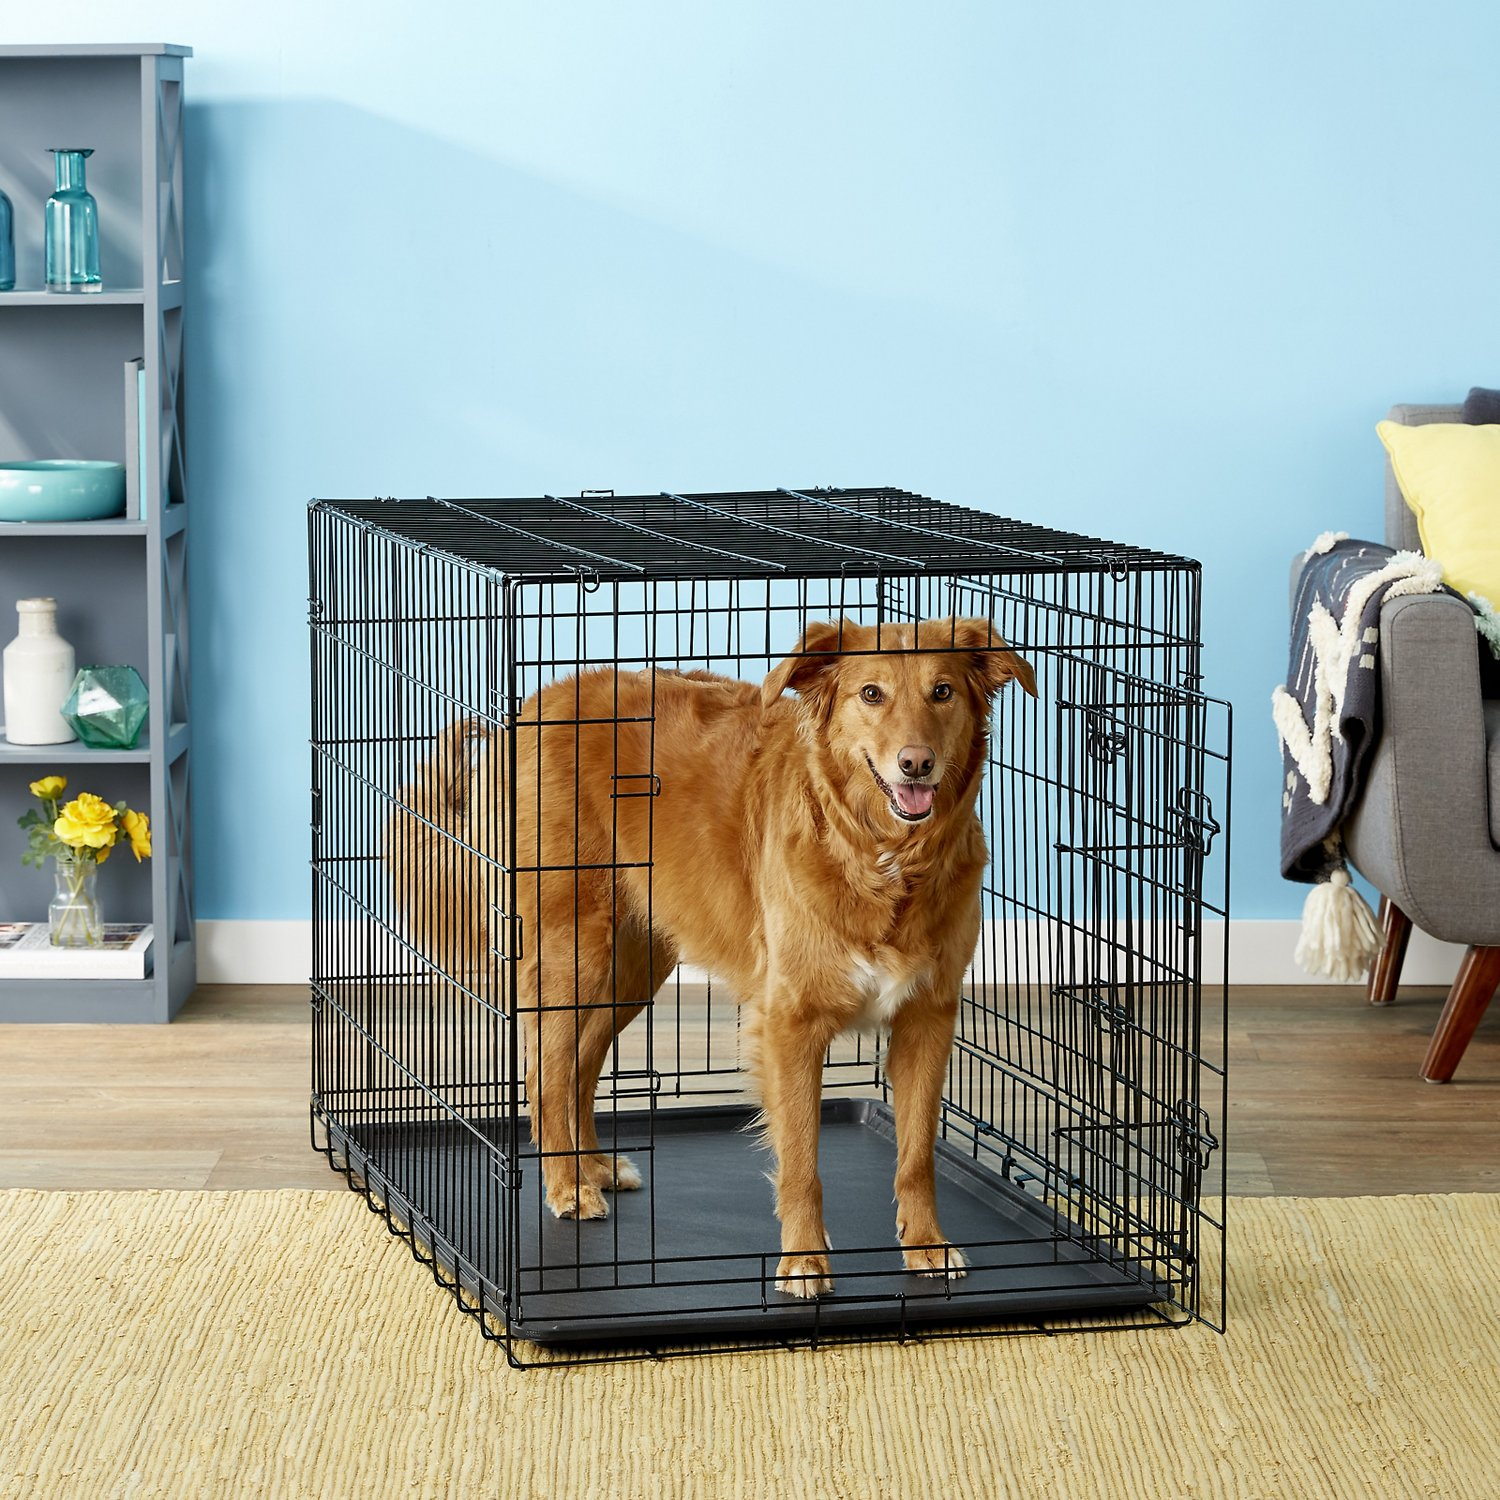 oxgord doubledoor folding heavyduty wire dog crate - Collapsible Dog Crate